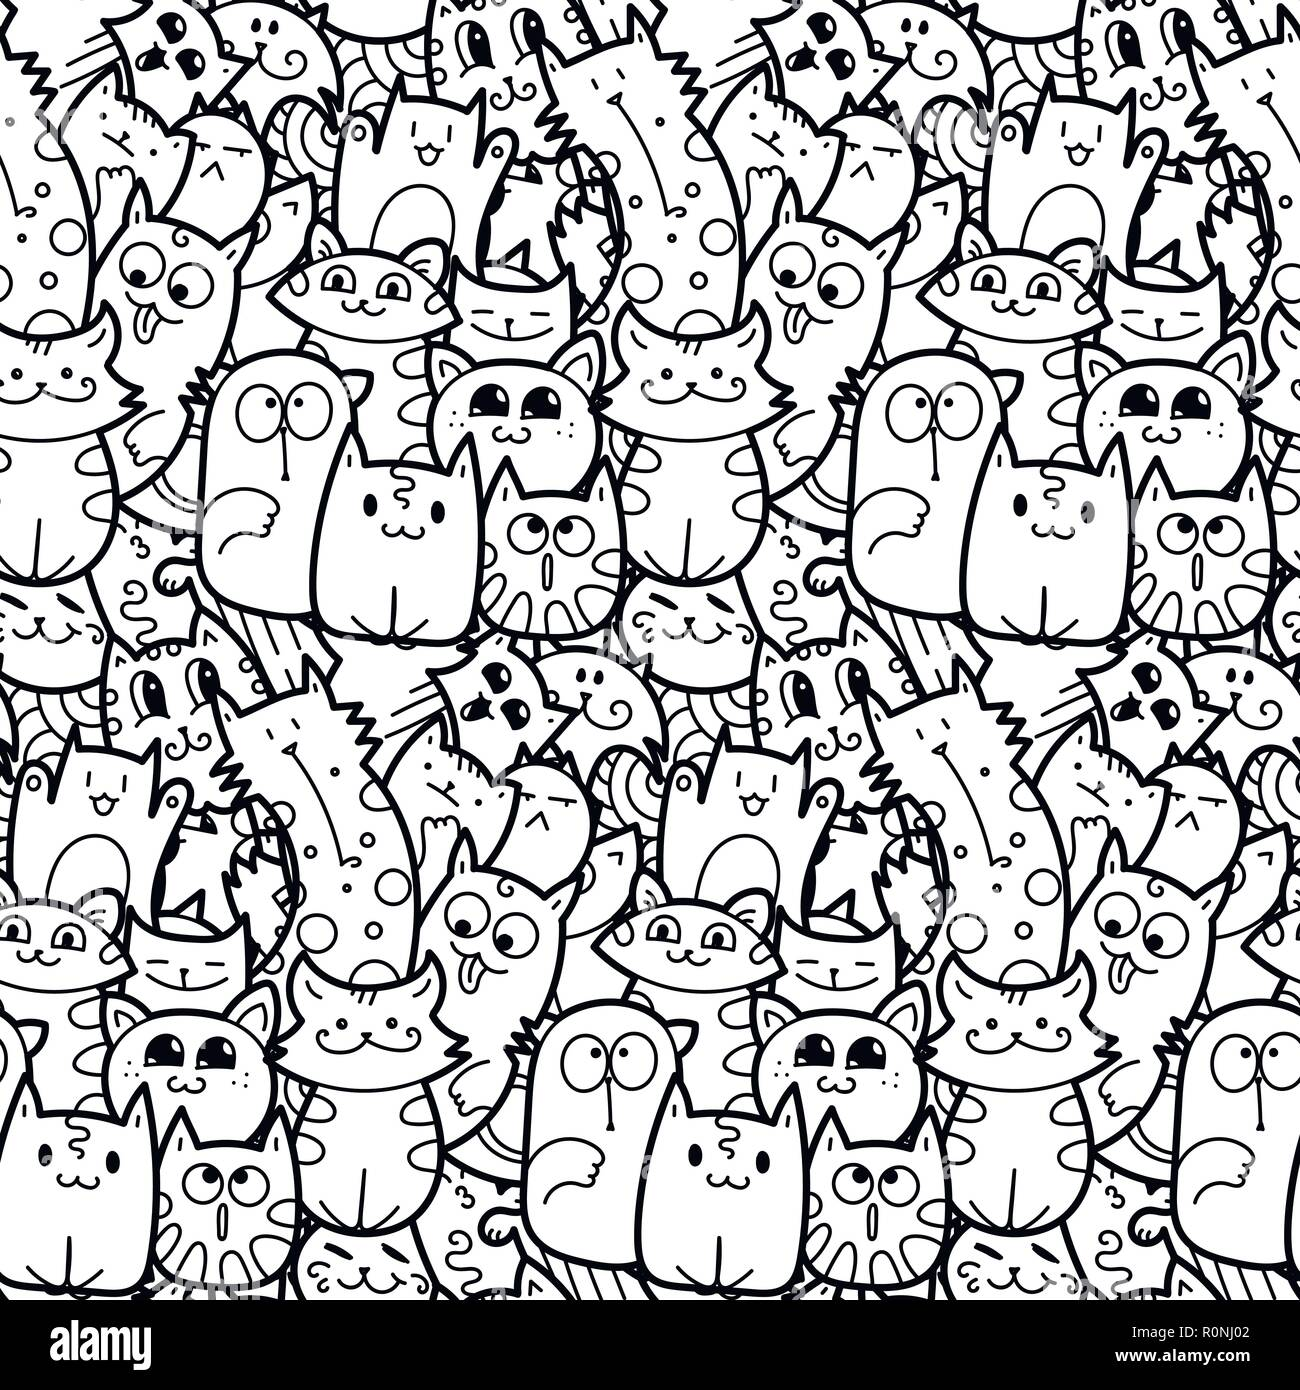 Funny doodle cats and kittens seamless pattern for prints, designs ...